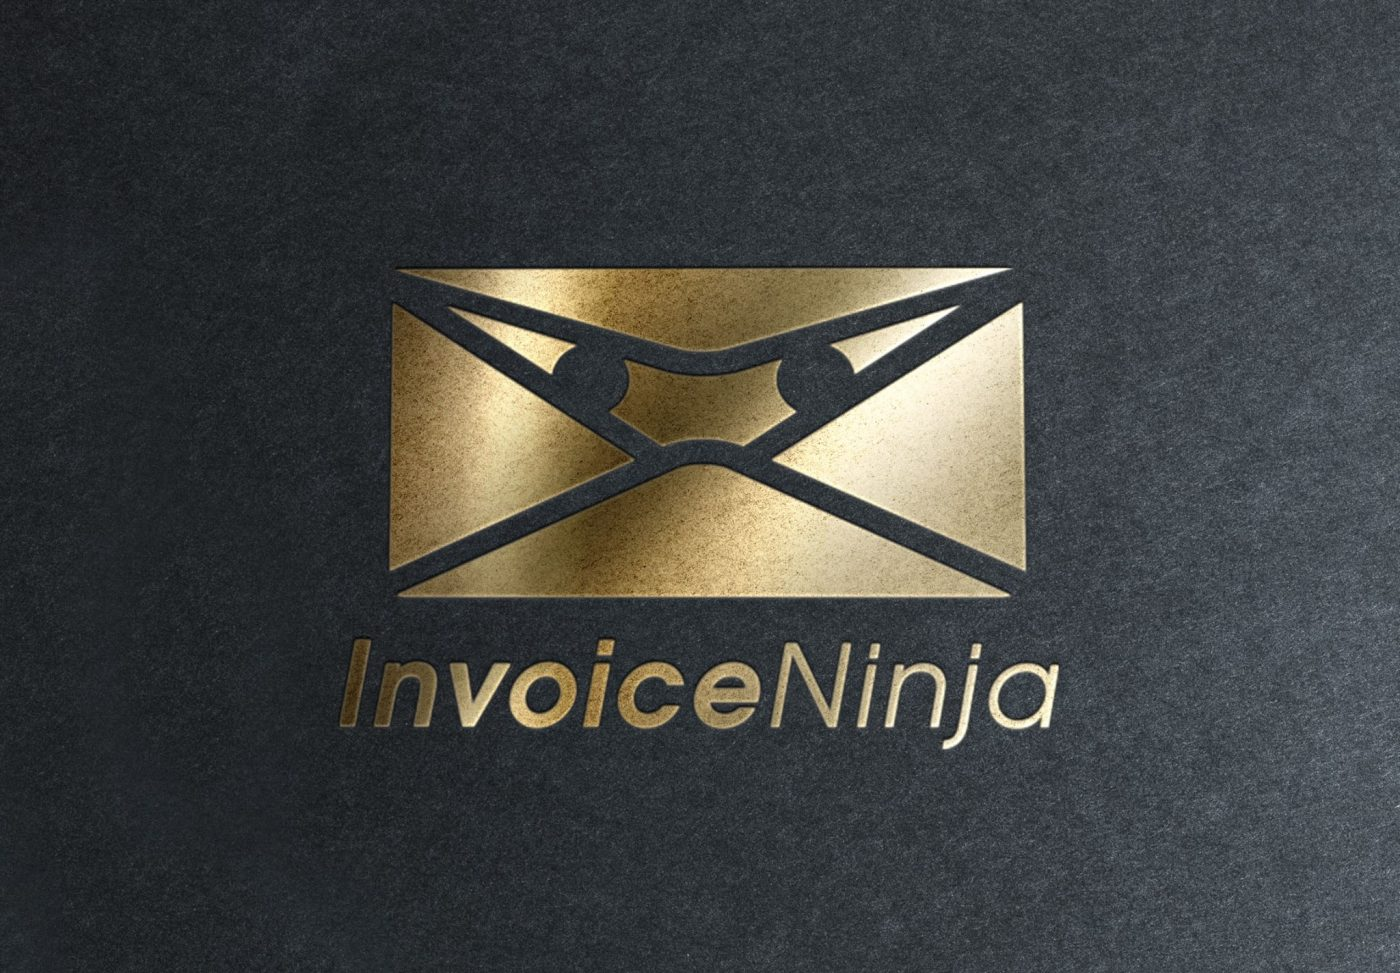 How To Be An Invoice Ninja  It s Easier   Cheaper Than You Think